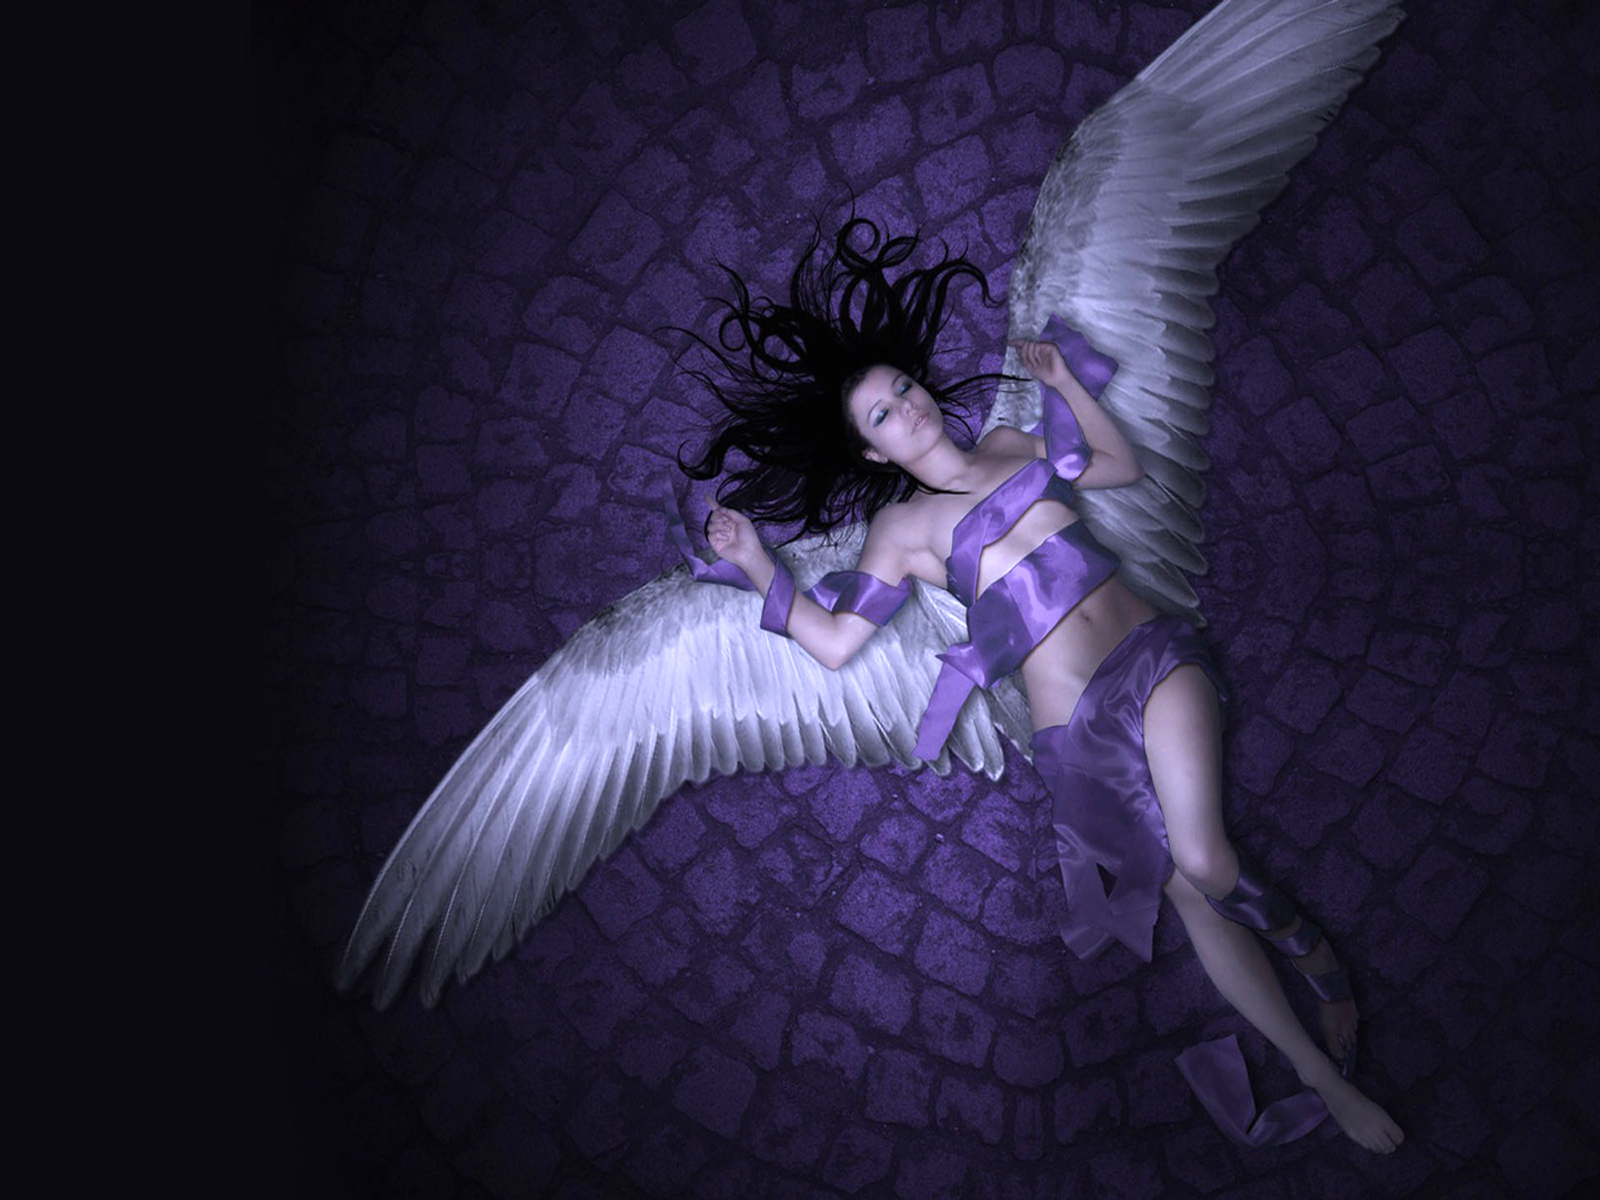 Fallen Angel Computer Wallpapers Desktop Backgrounds 1600x1200 ID 1600x1200